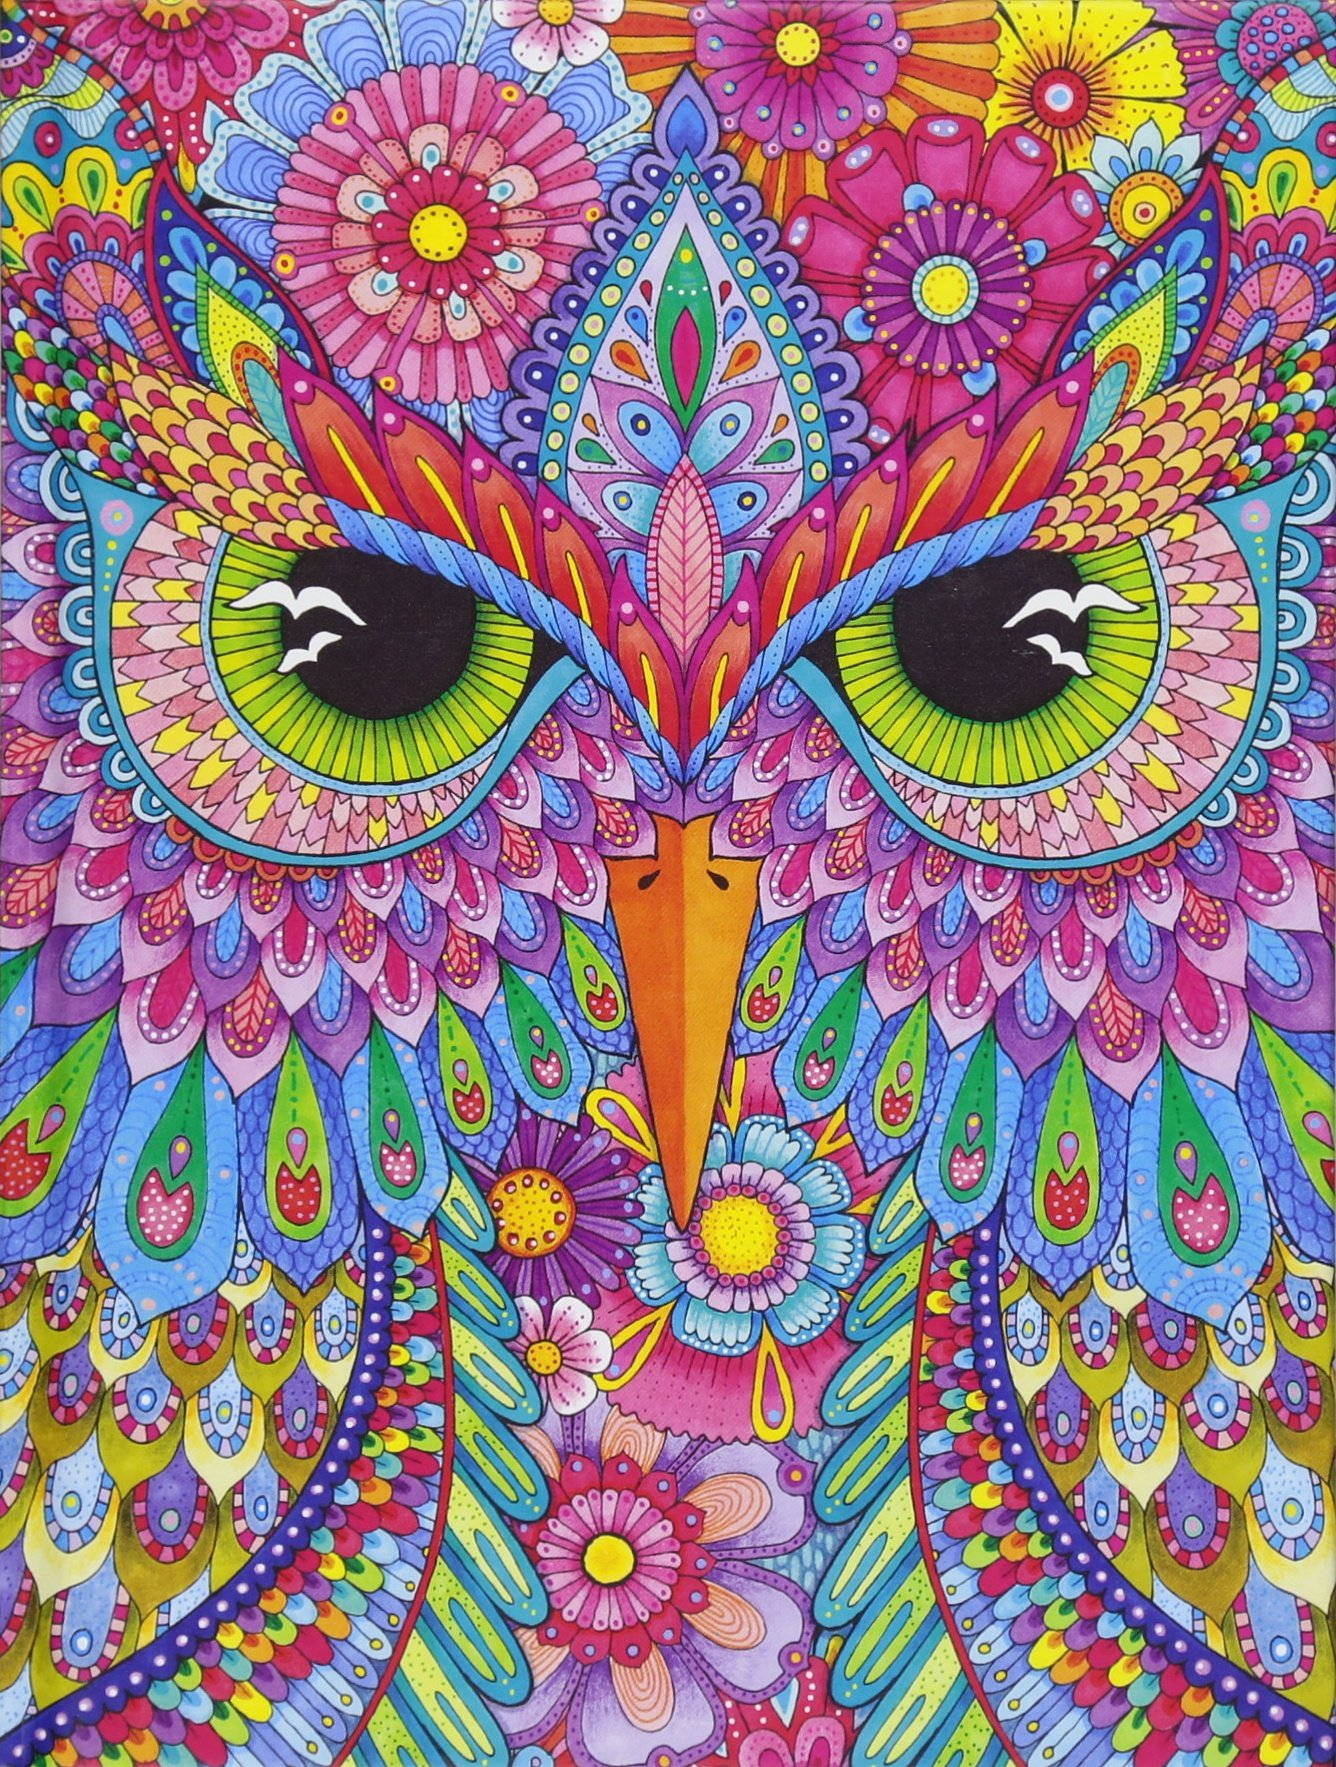 Hello Angel Lined Journal Owl (Quiet Fox Designs) Beautifully Crafted Hardcover Diary for Journaling and Recording Your Dreams; 128 Pages of Lined Writing Space pdf epub